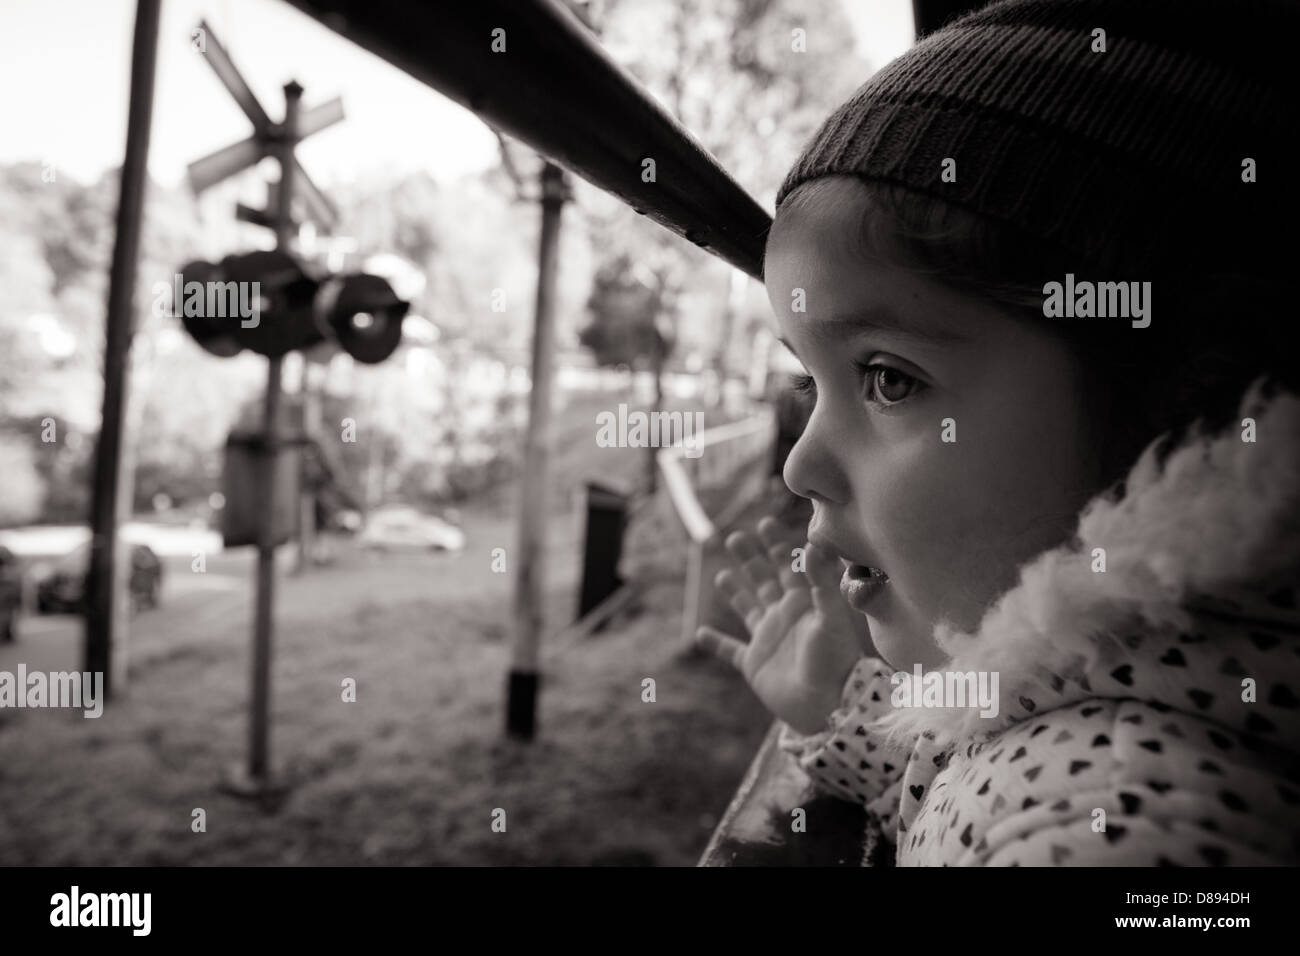 A young girl looks out of a window on the Puffing Billy steam train in Melbourne, Victoria, Australia - Stock Image